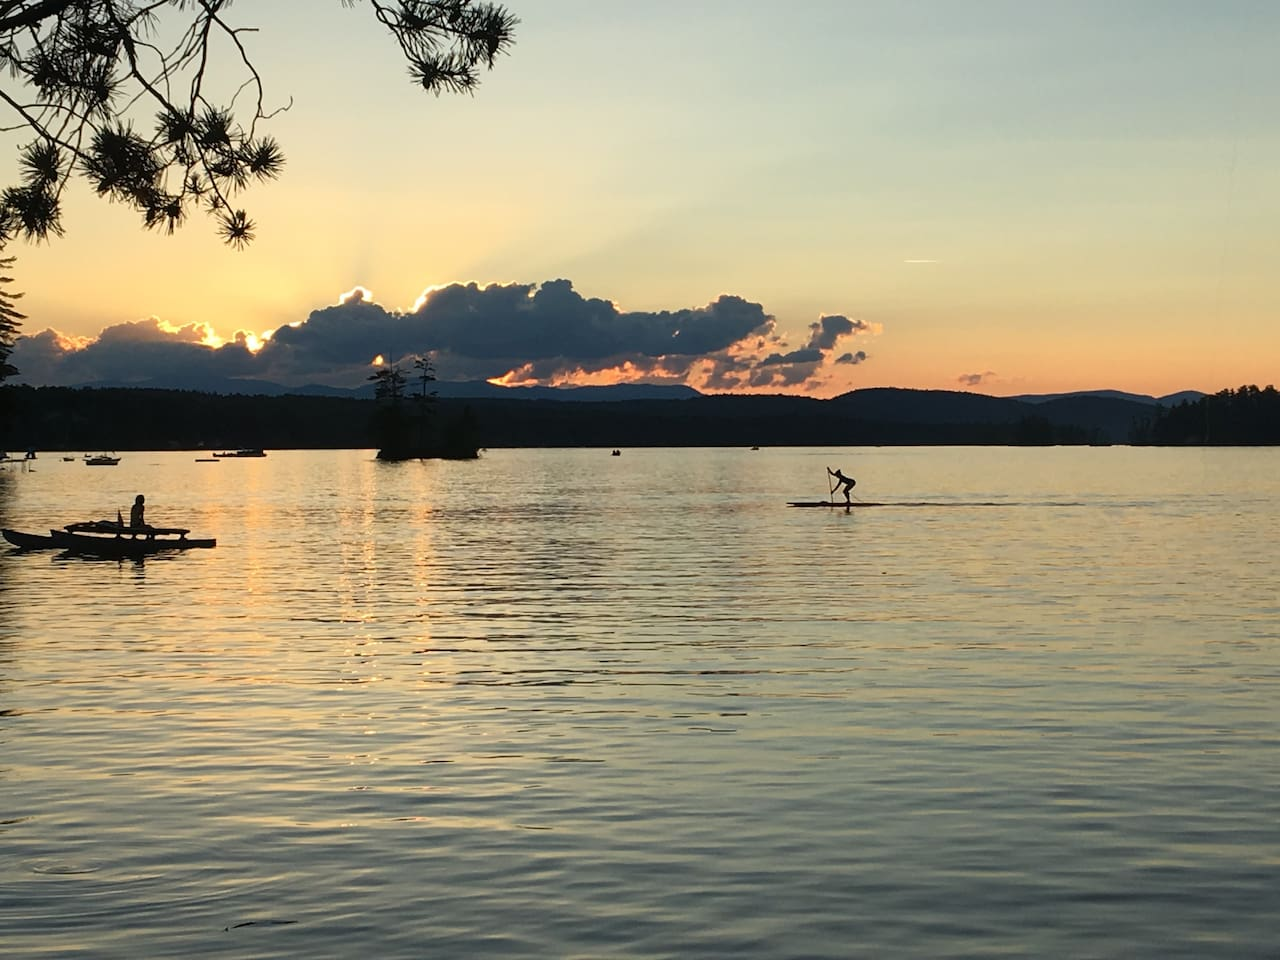 The sunsets cannot be beat from the lakefront of the Perley House's private peninsula